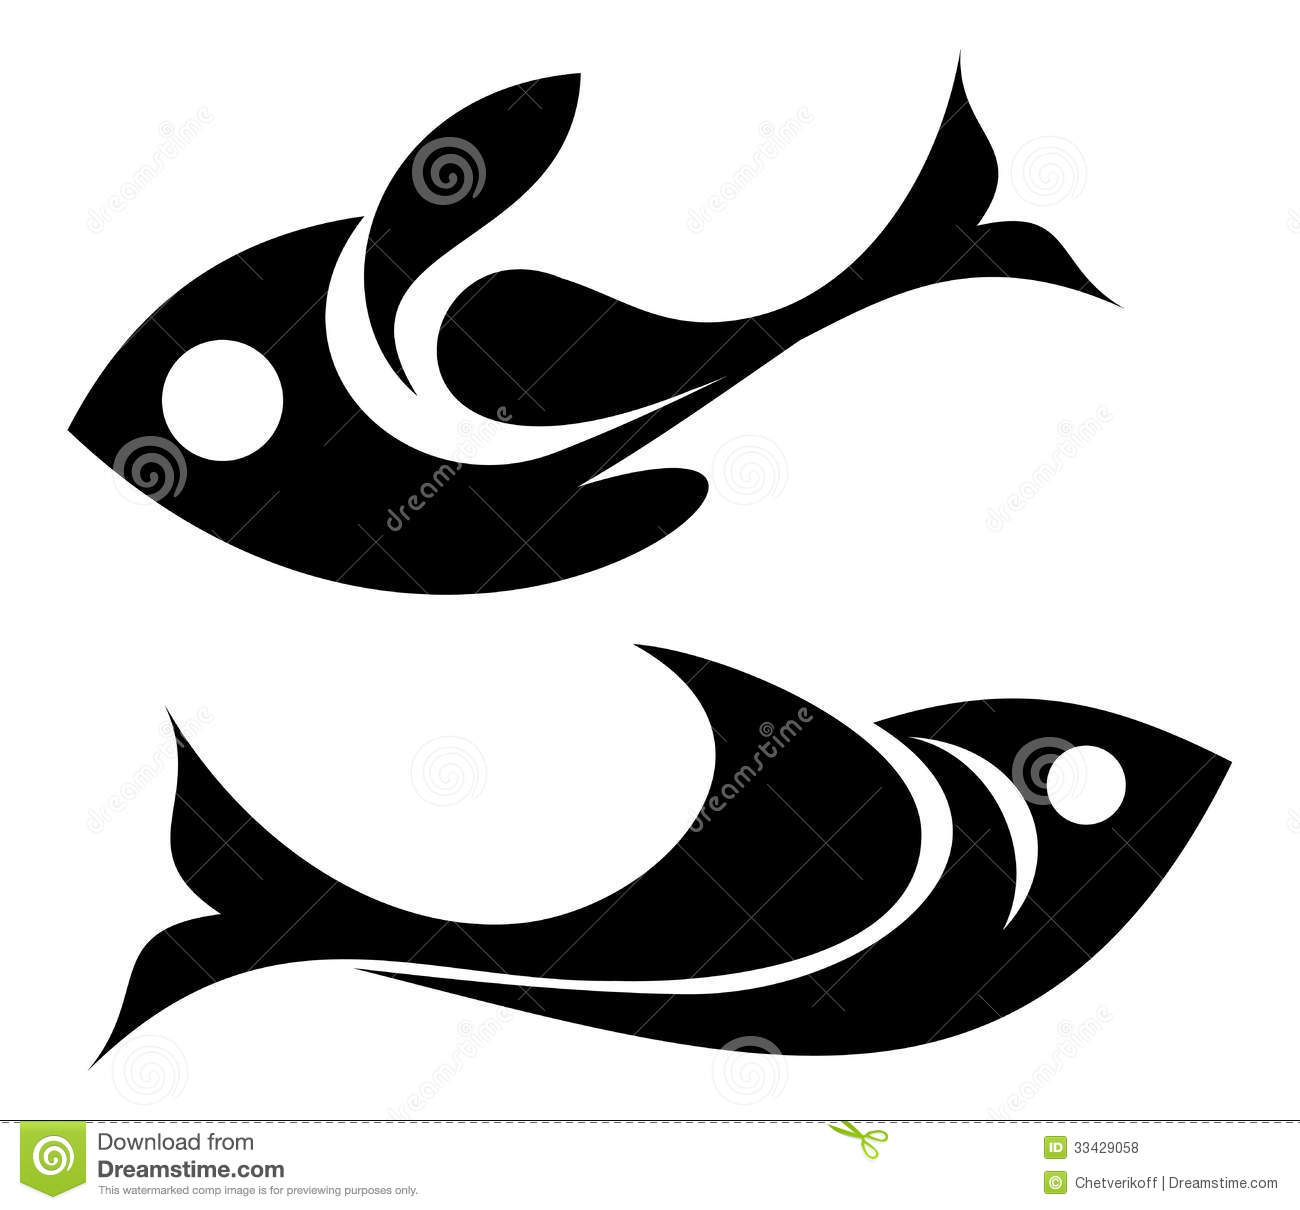 Fish icon - isolated vector silhouette on white background.